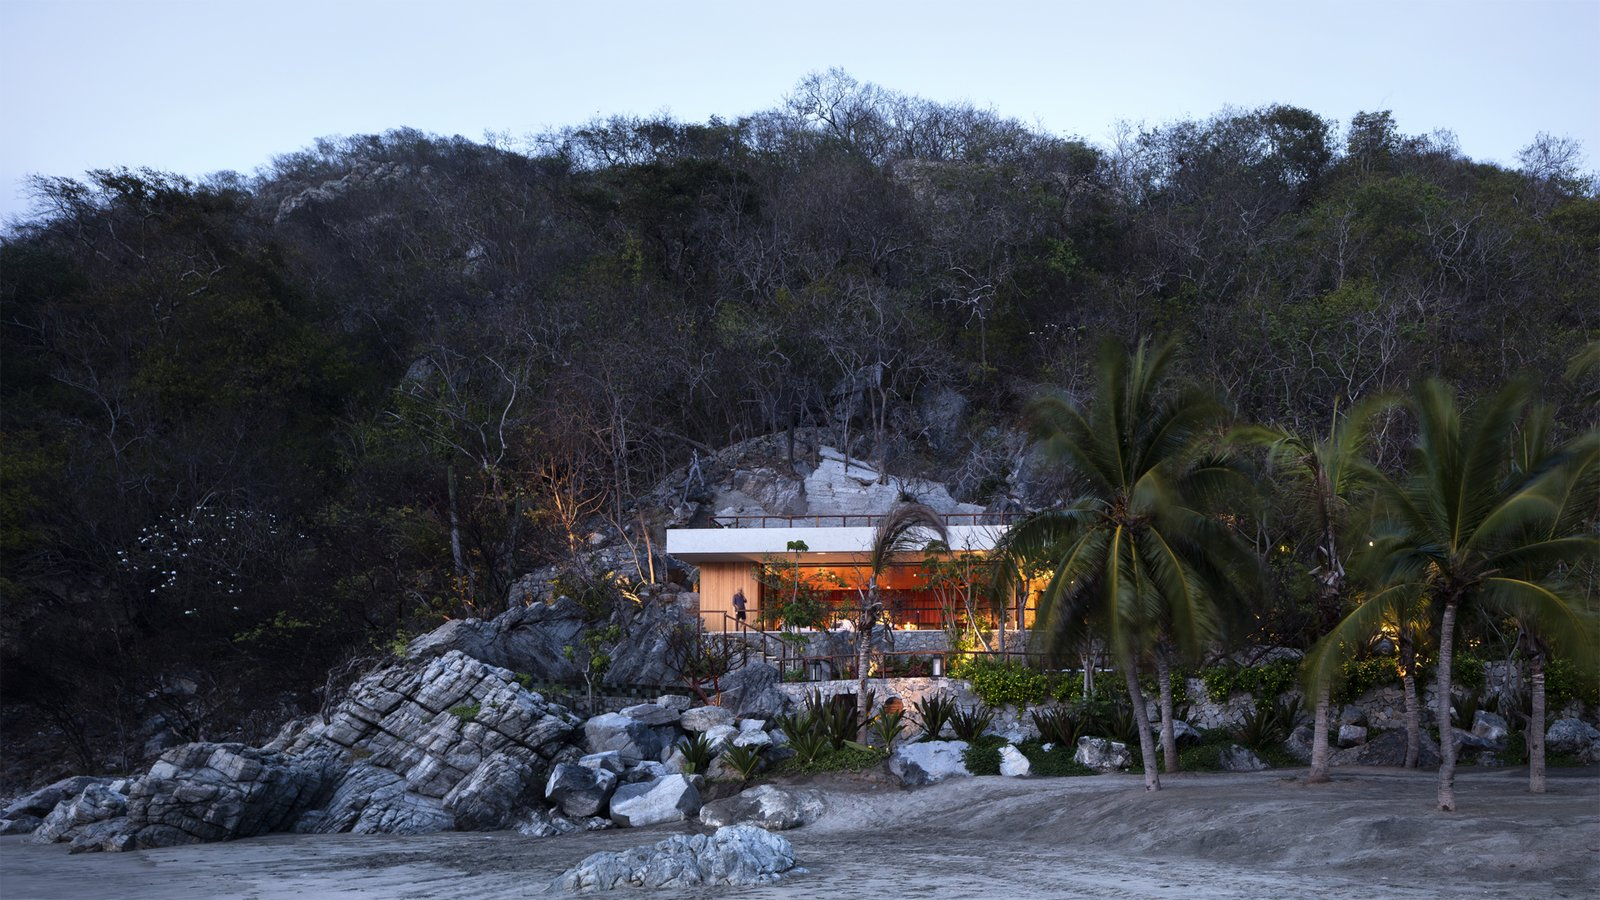 In Mexico, a Modern Palapa and Pool Are Carved Into a Rocky Slope